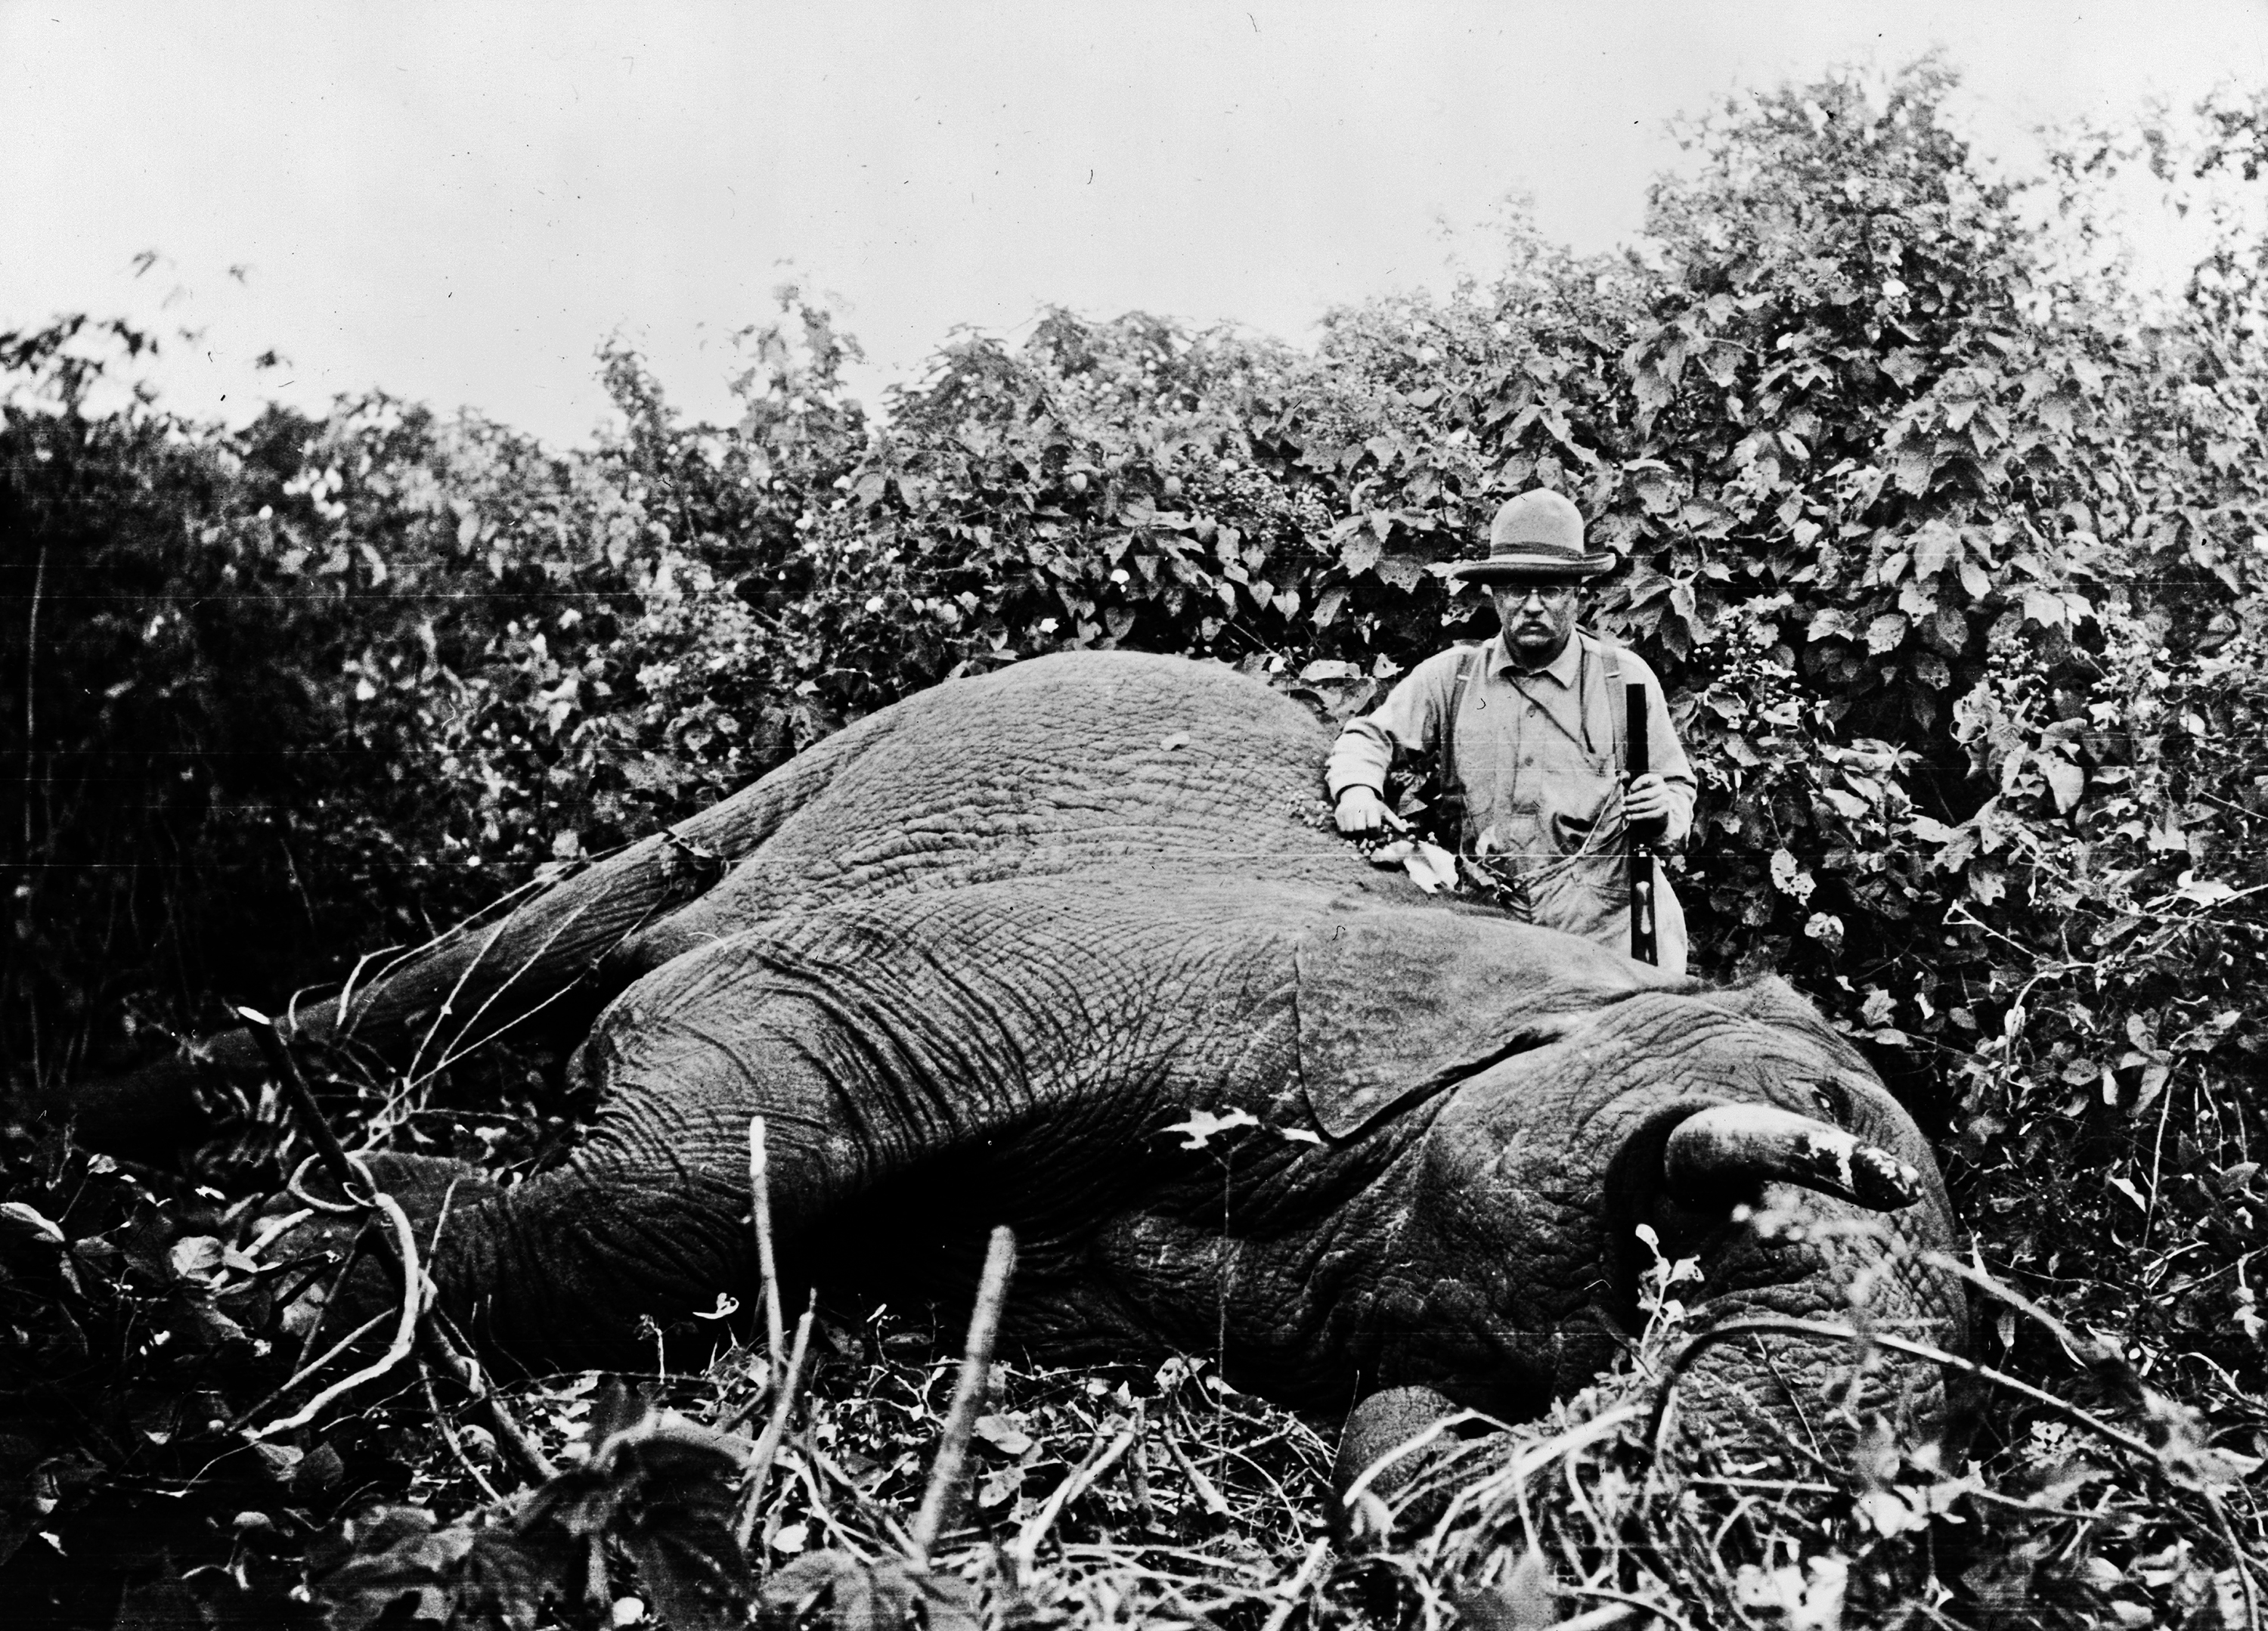 All 512 animals Teddy Roosevelt and his son killed on safari